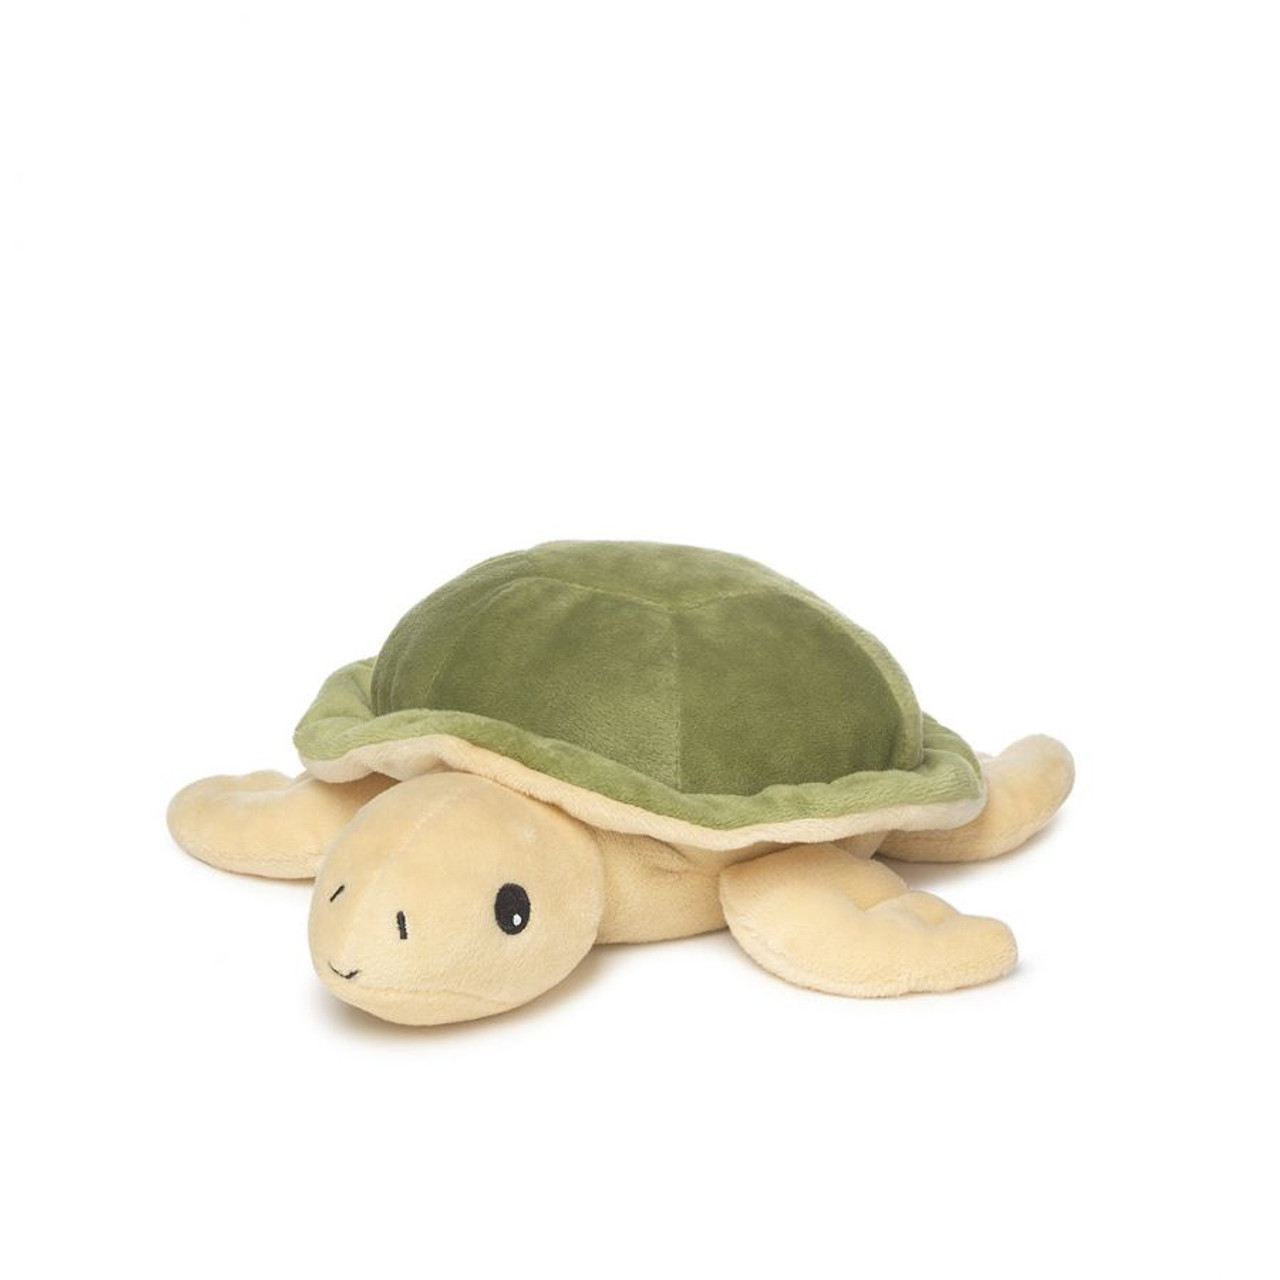 "All age groups can have hours of fun using their Warmies® Cozy Plush Junior Turtle, knowing that they can be warm all night long.   The 9"" Junior Turtle is fully microwavable yet entirely safe to hold tight after taking a bath, putting on PJs, and heading up the stairs to bed."